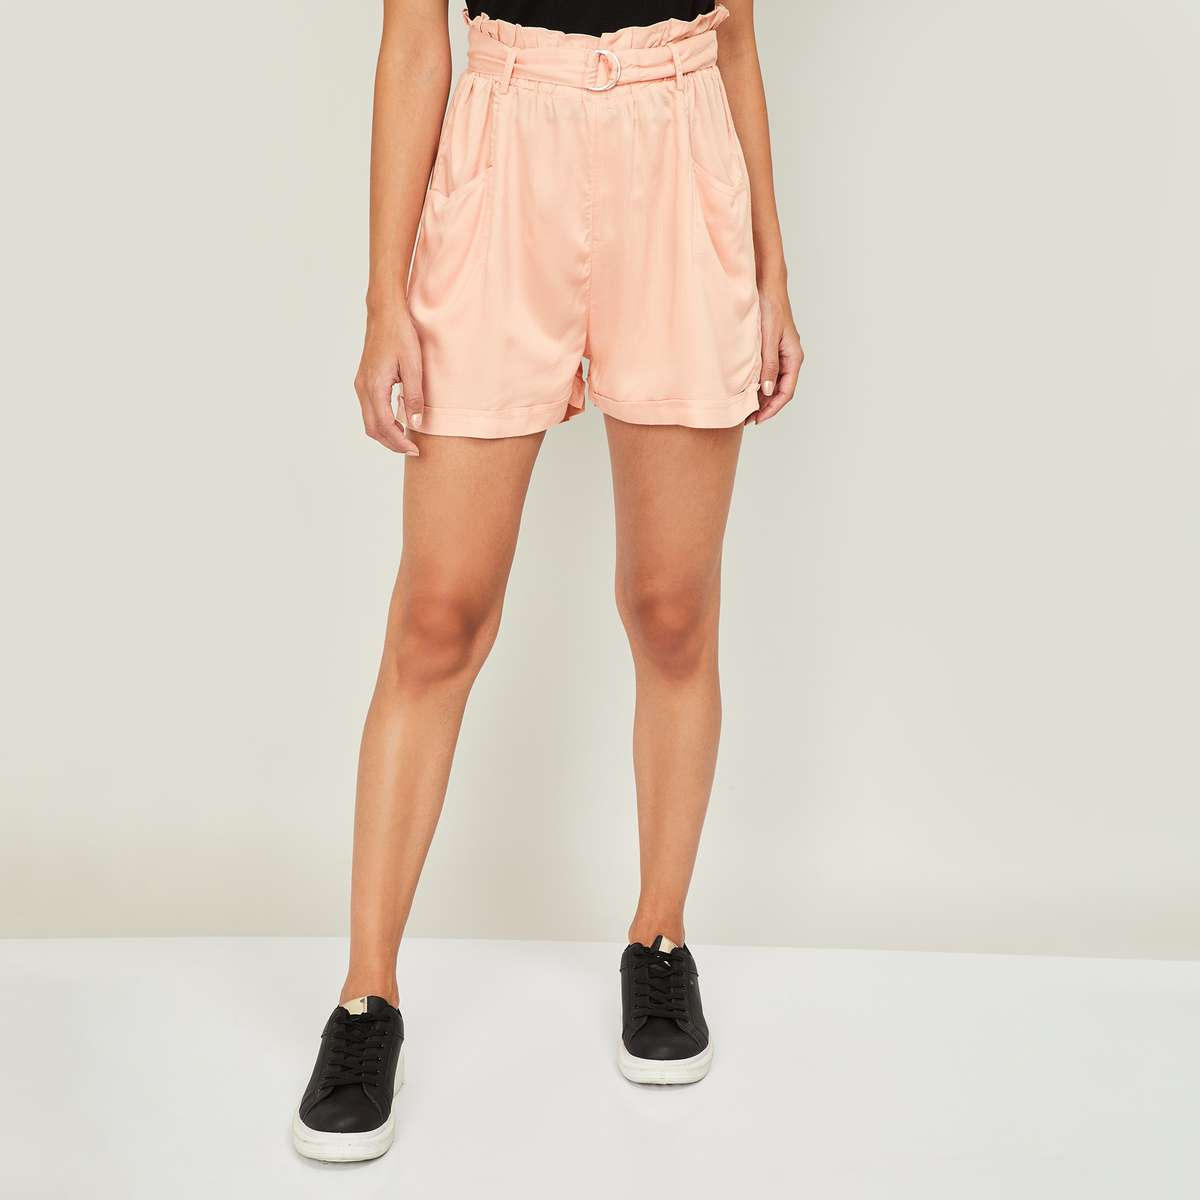 4.GINGER Women Solid Shorts